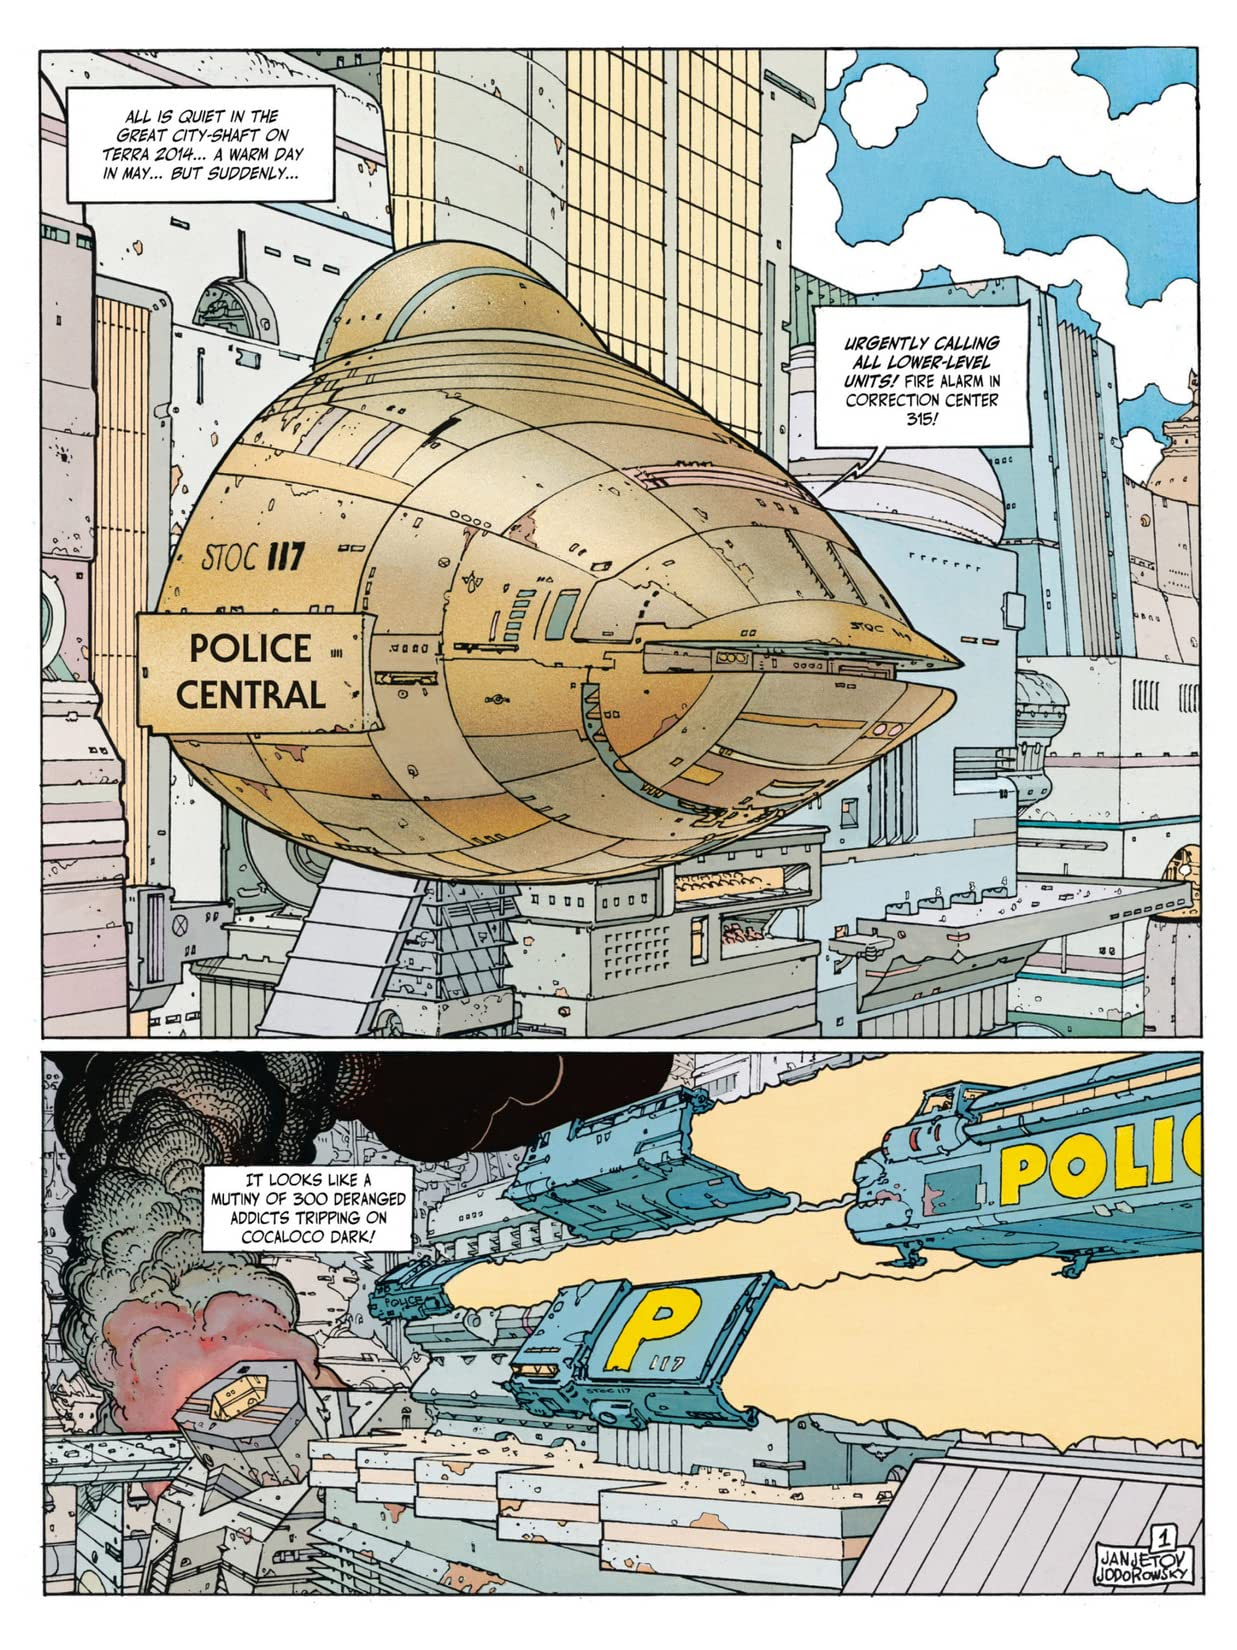 Before the Incal Vol. 4: Psycho Anarchist